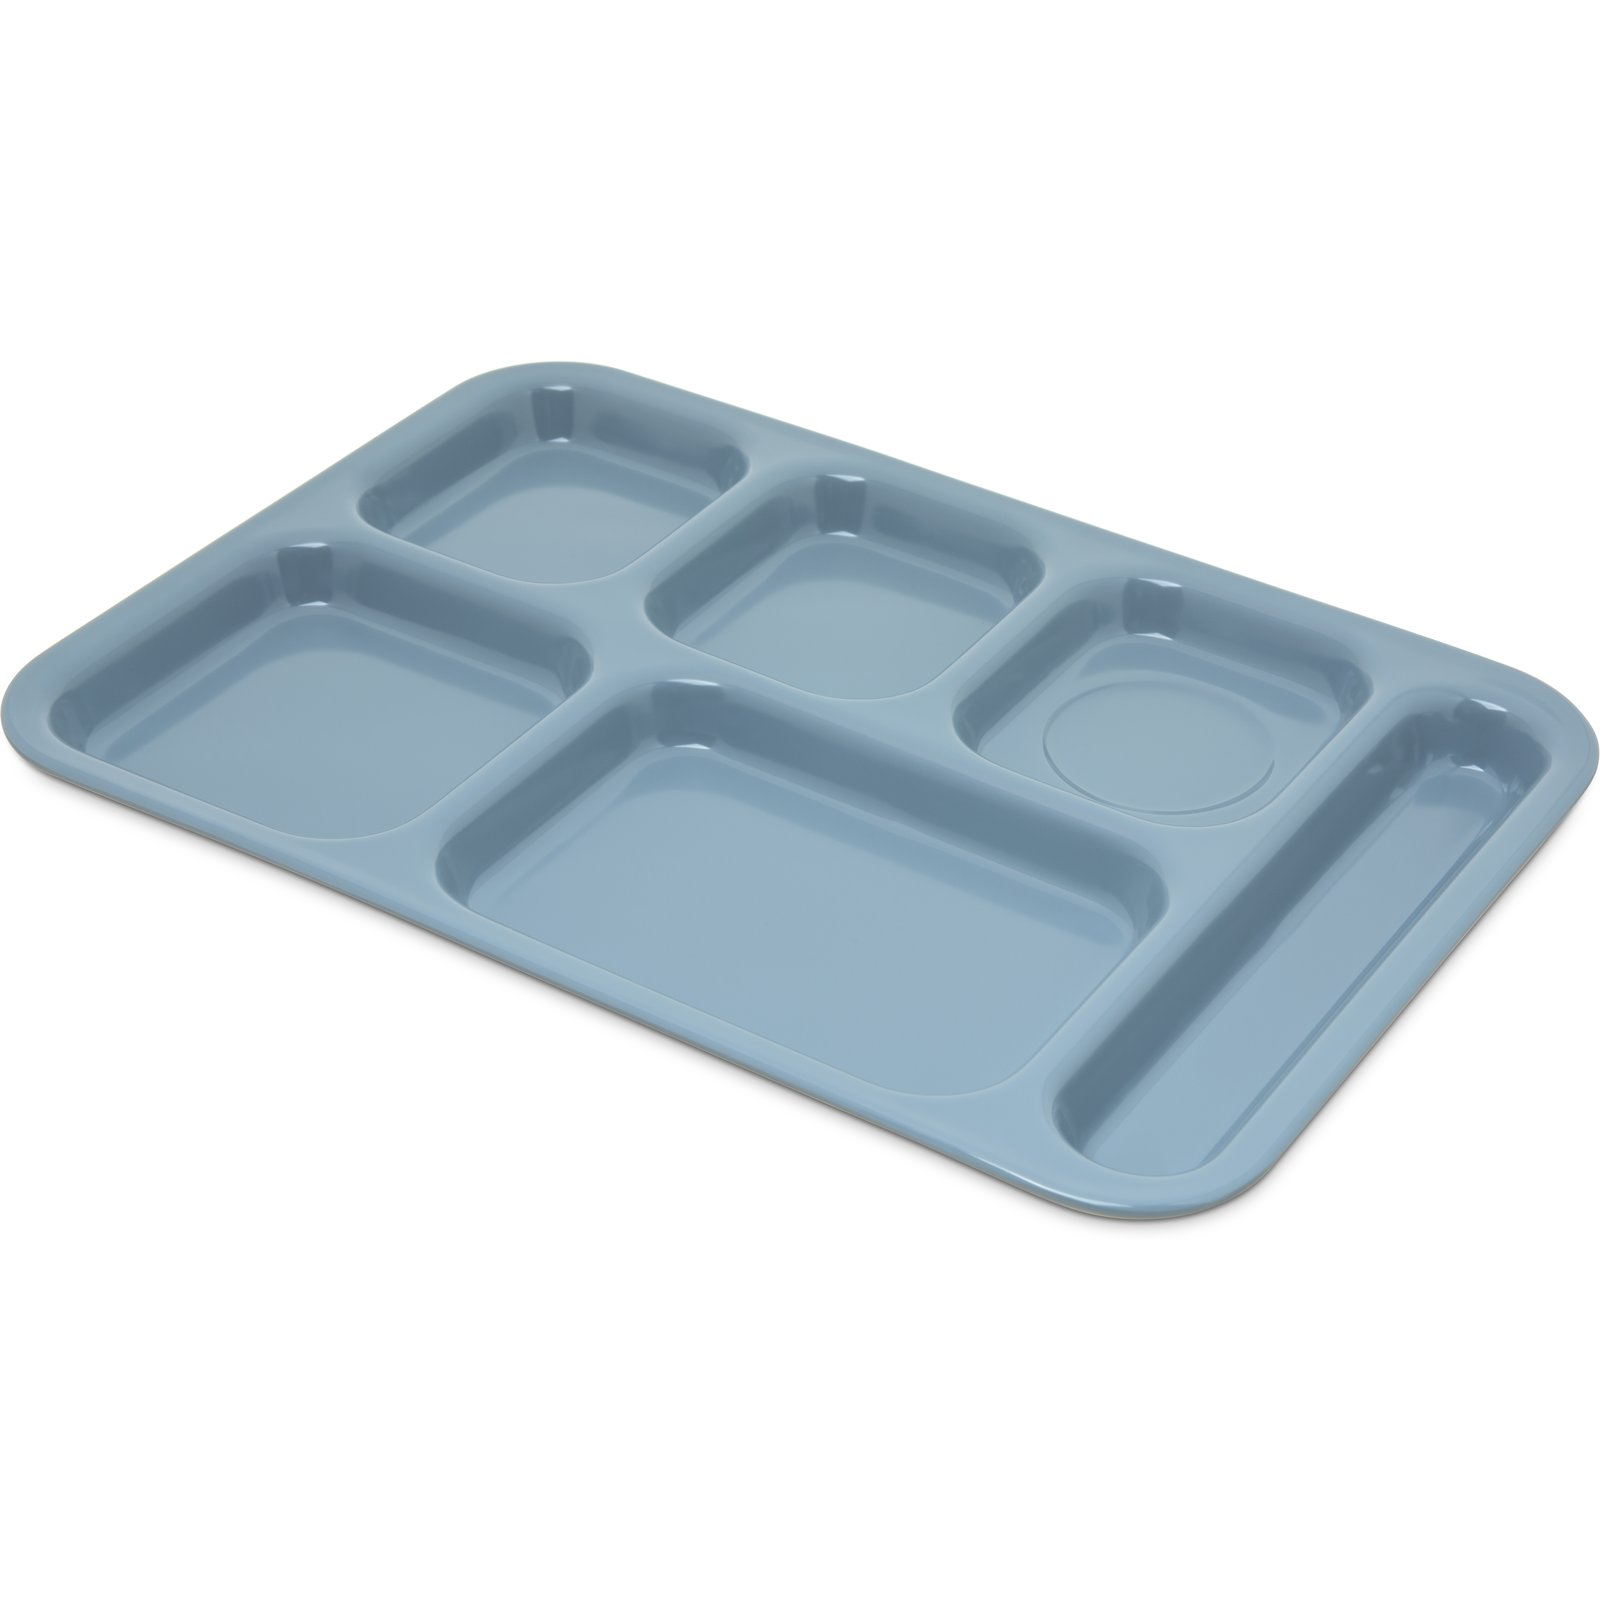 4398859 - Tray 6 Compartment Right Hand 14.5\